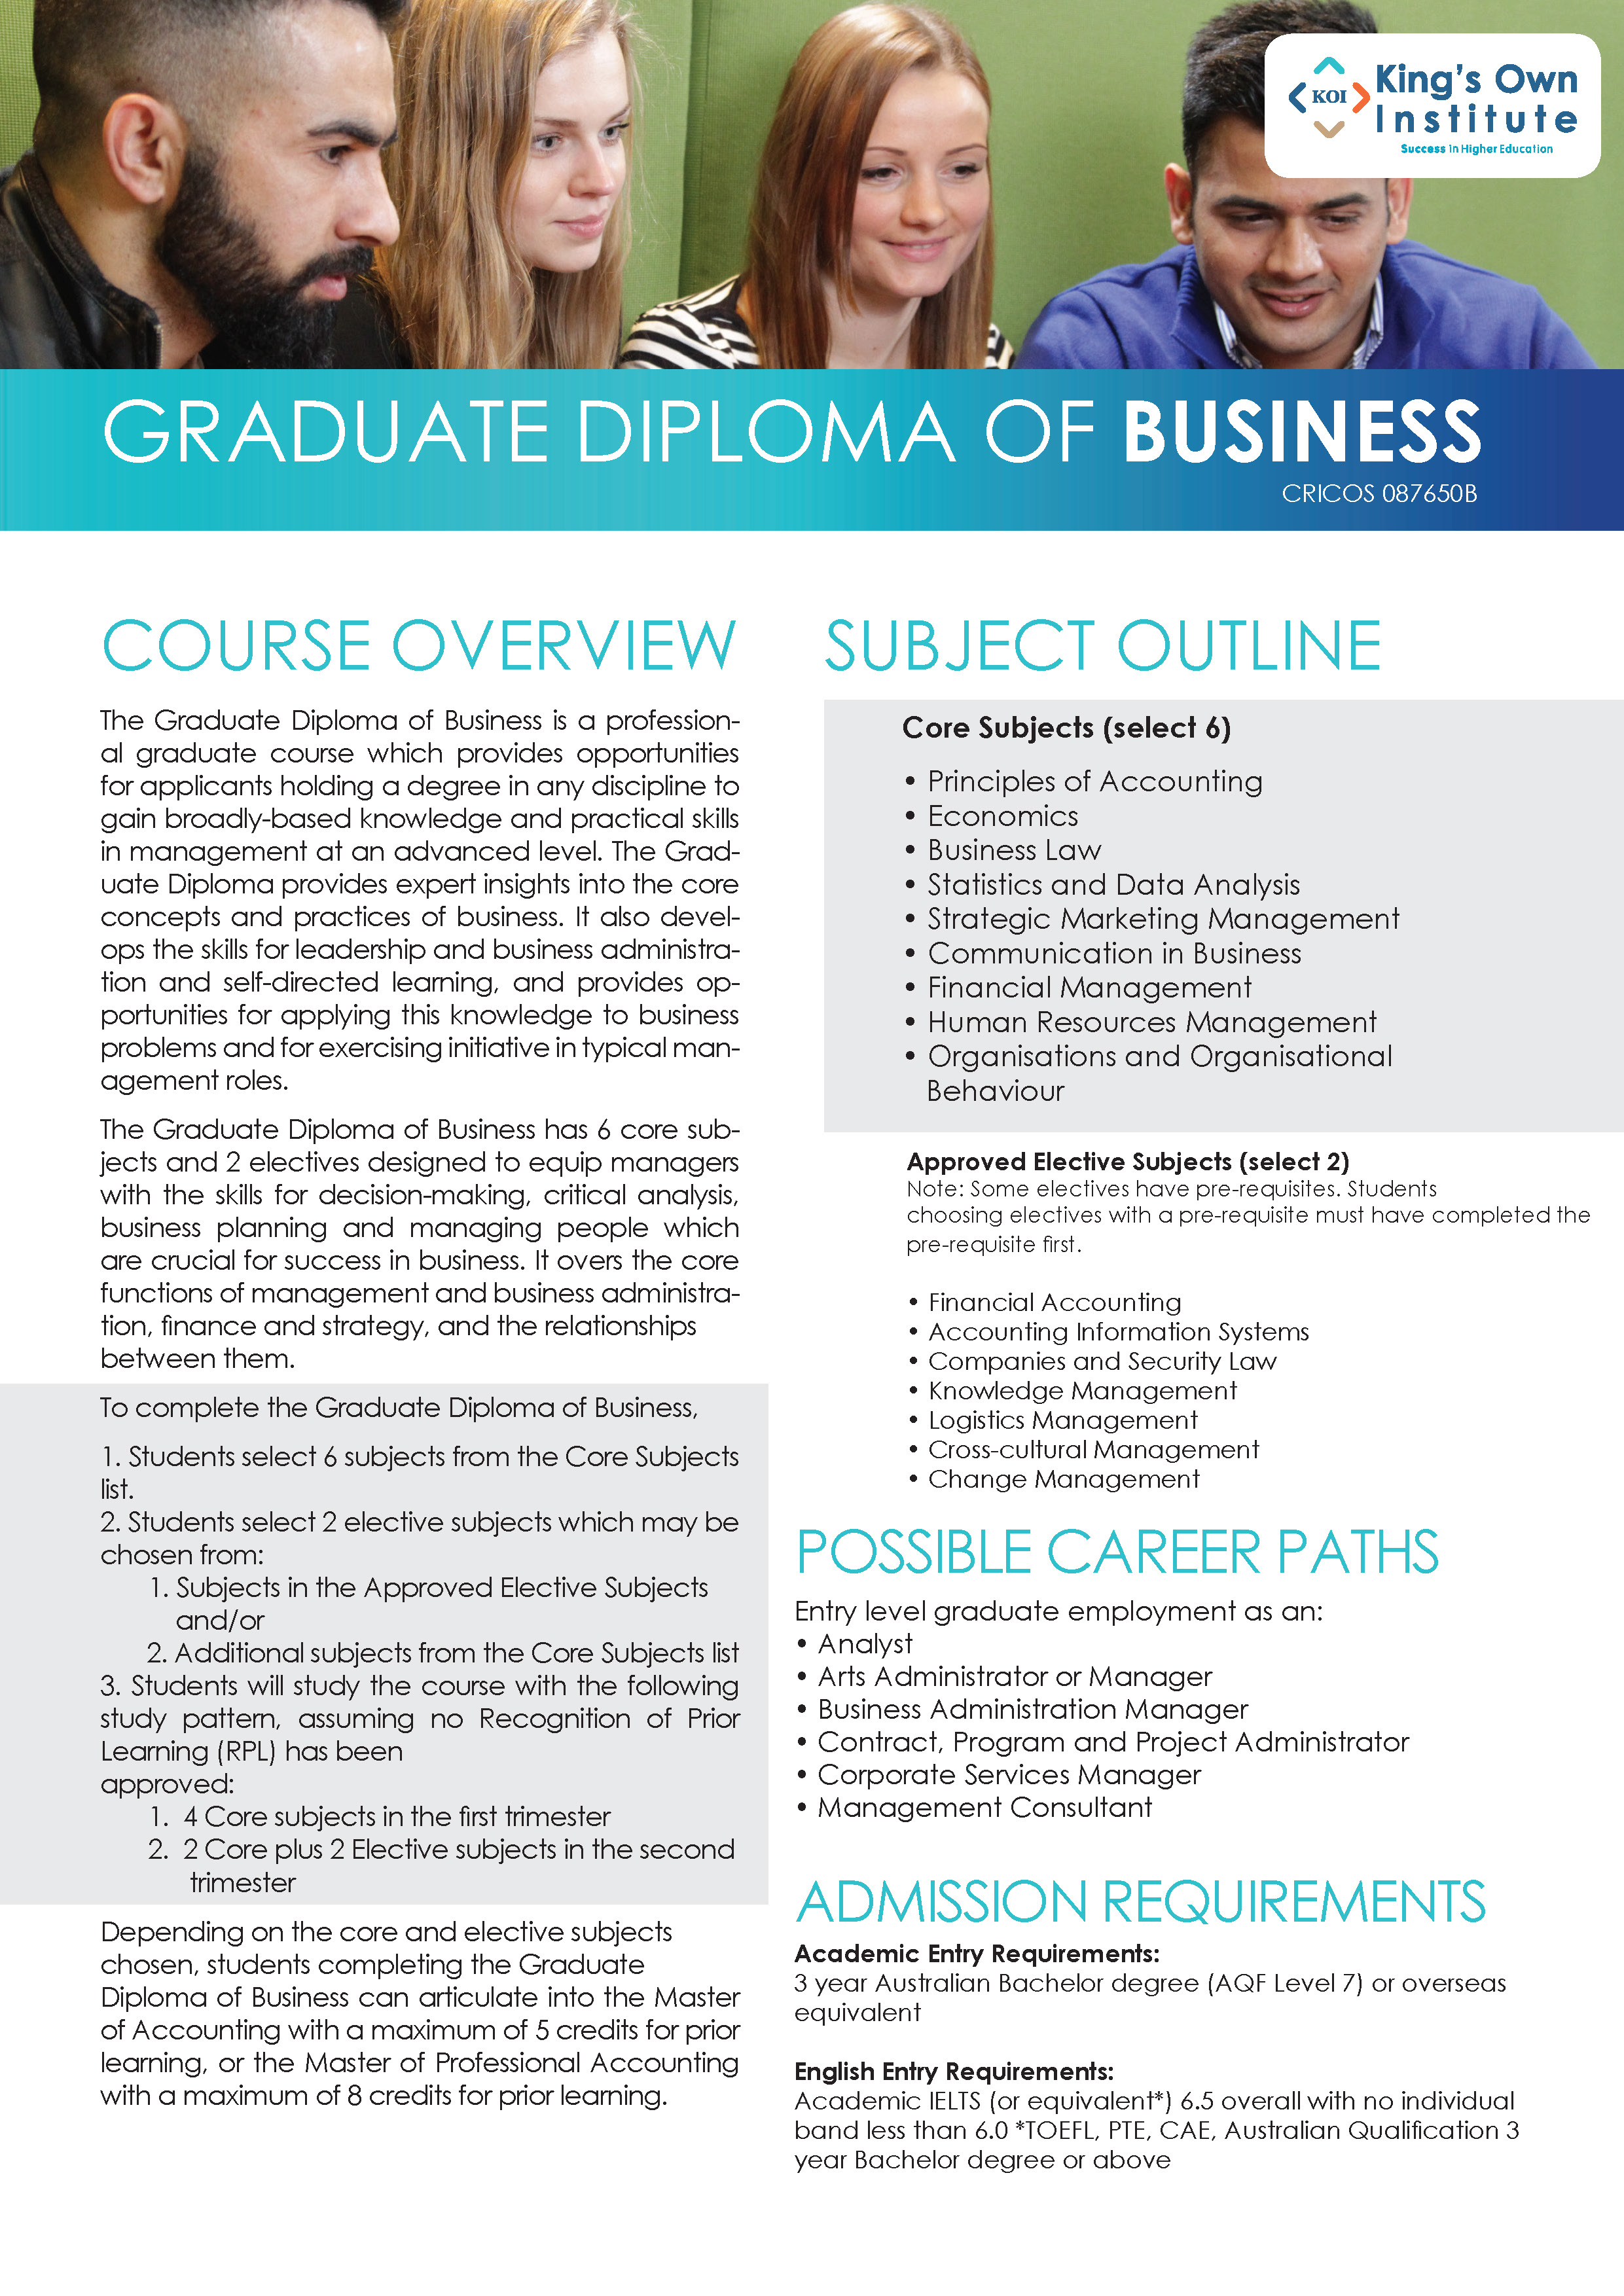 GRADUATE DIPLOMA OF BUSINESS